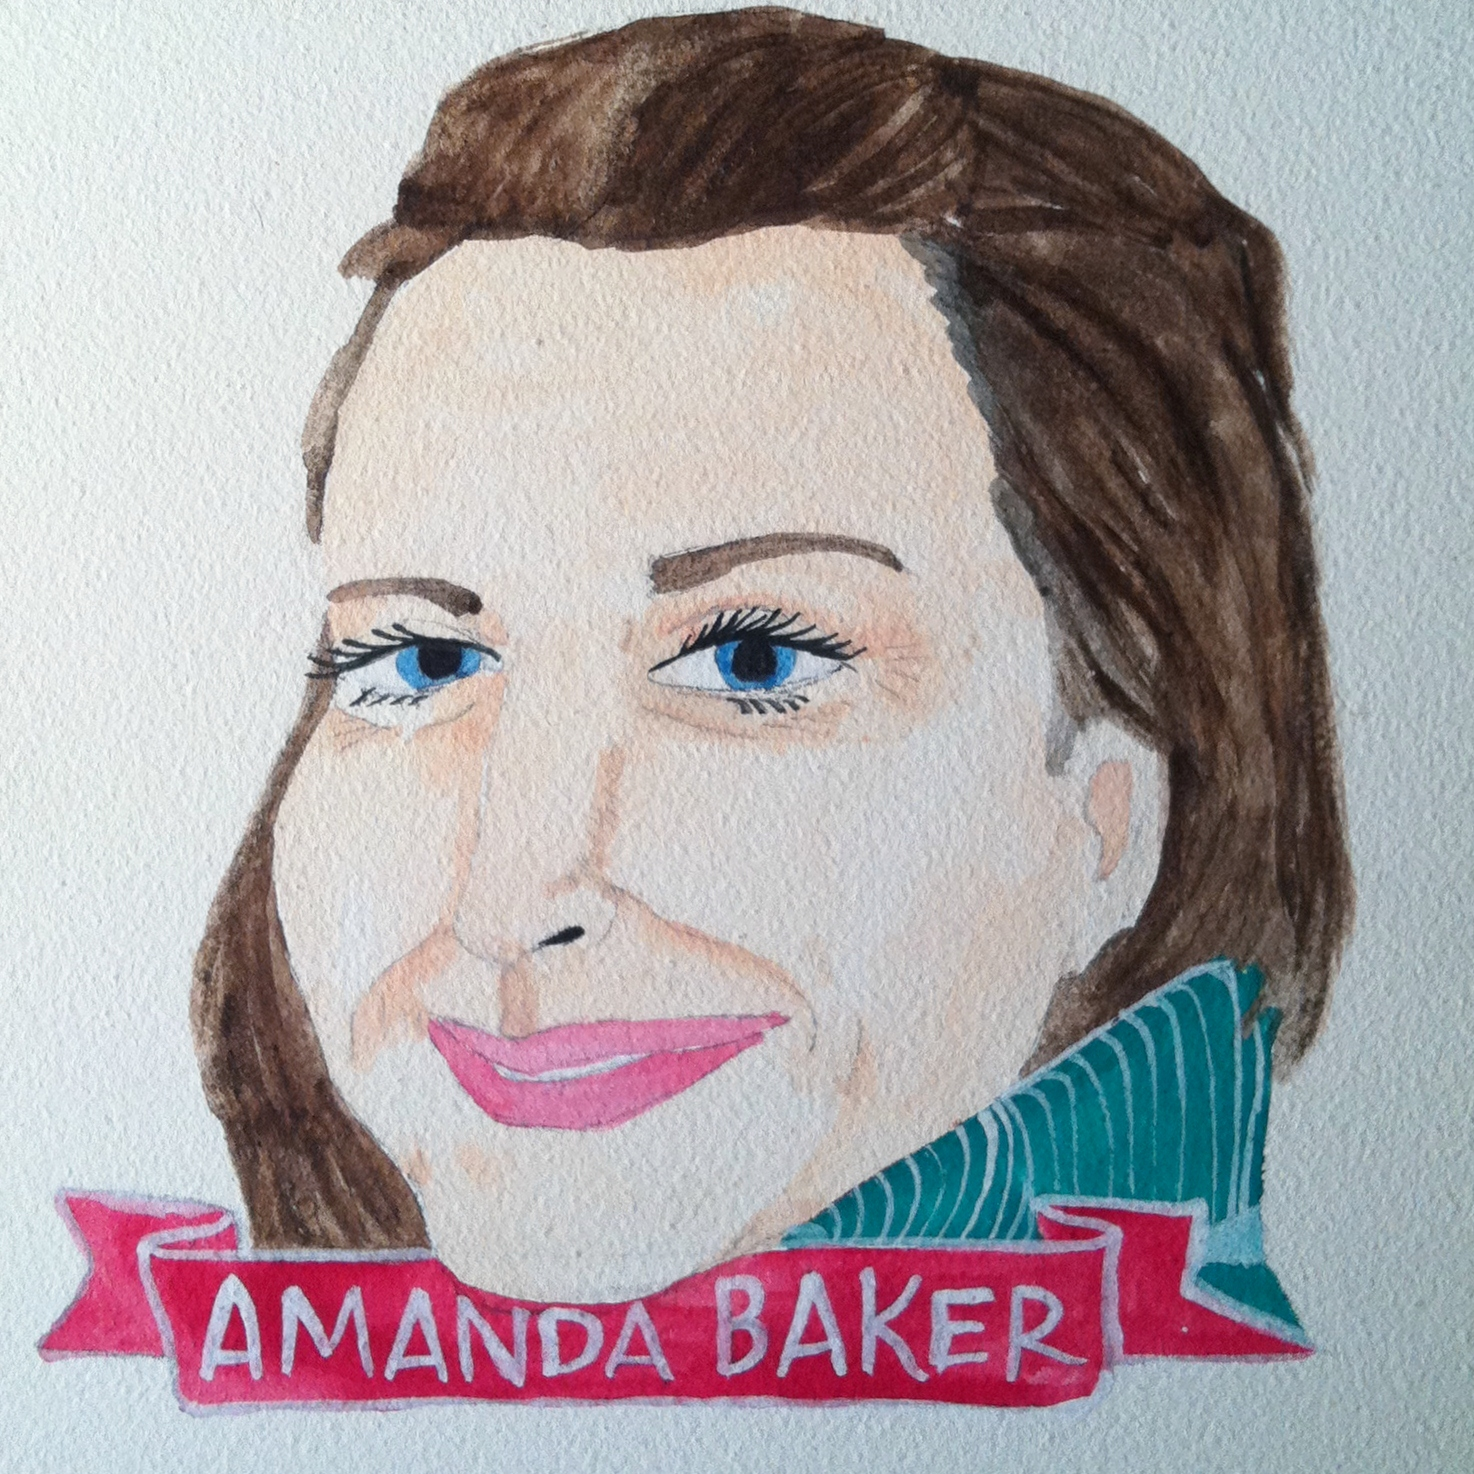 Talent Loves Company at Barbara Archer Gallery: 365 portraits by Lydia Walls - Amanda Baker